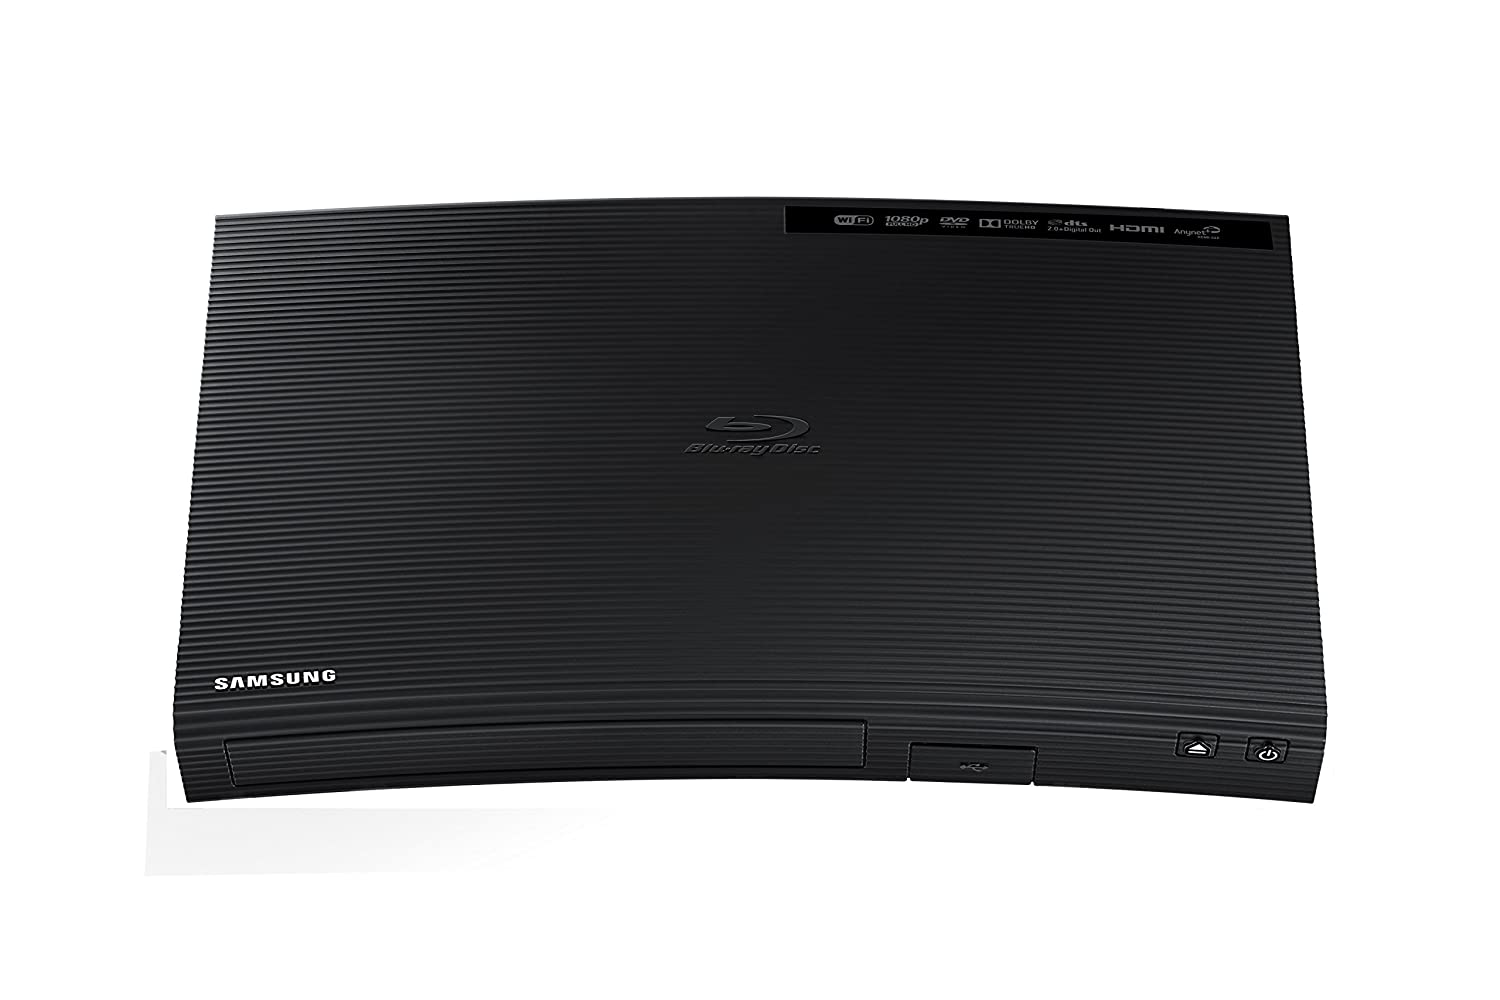 The Best Blu-Ray Player 4